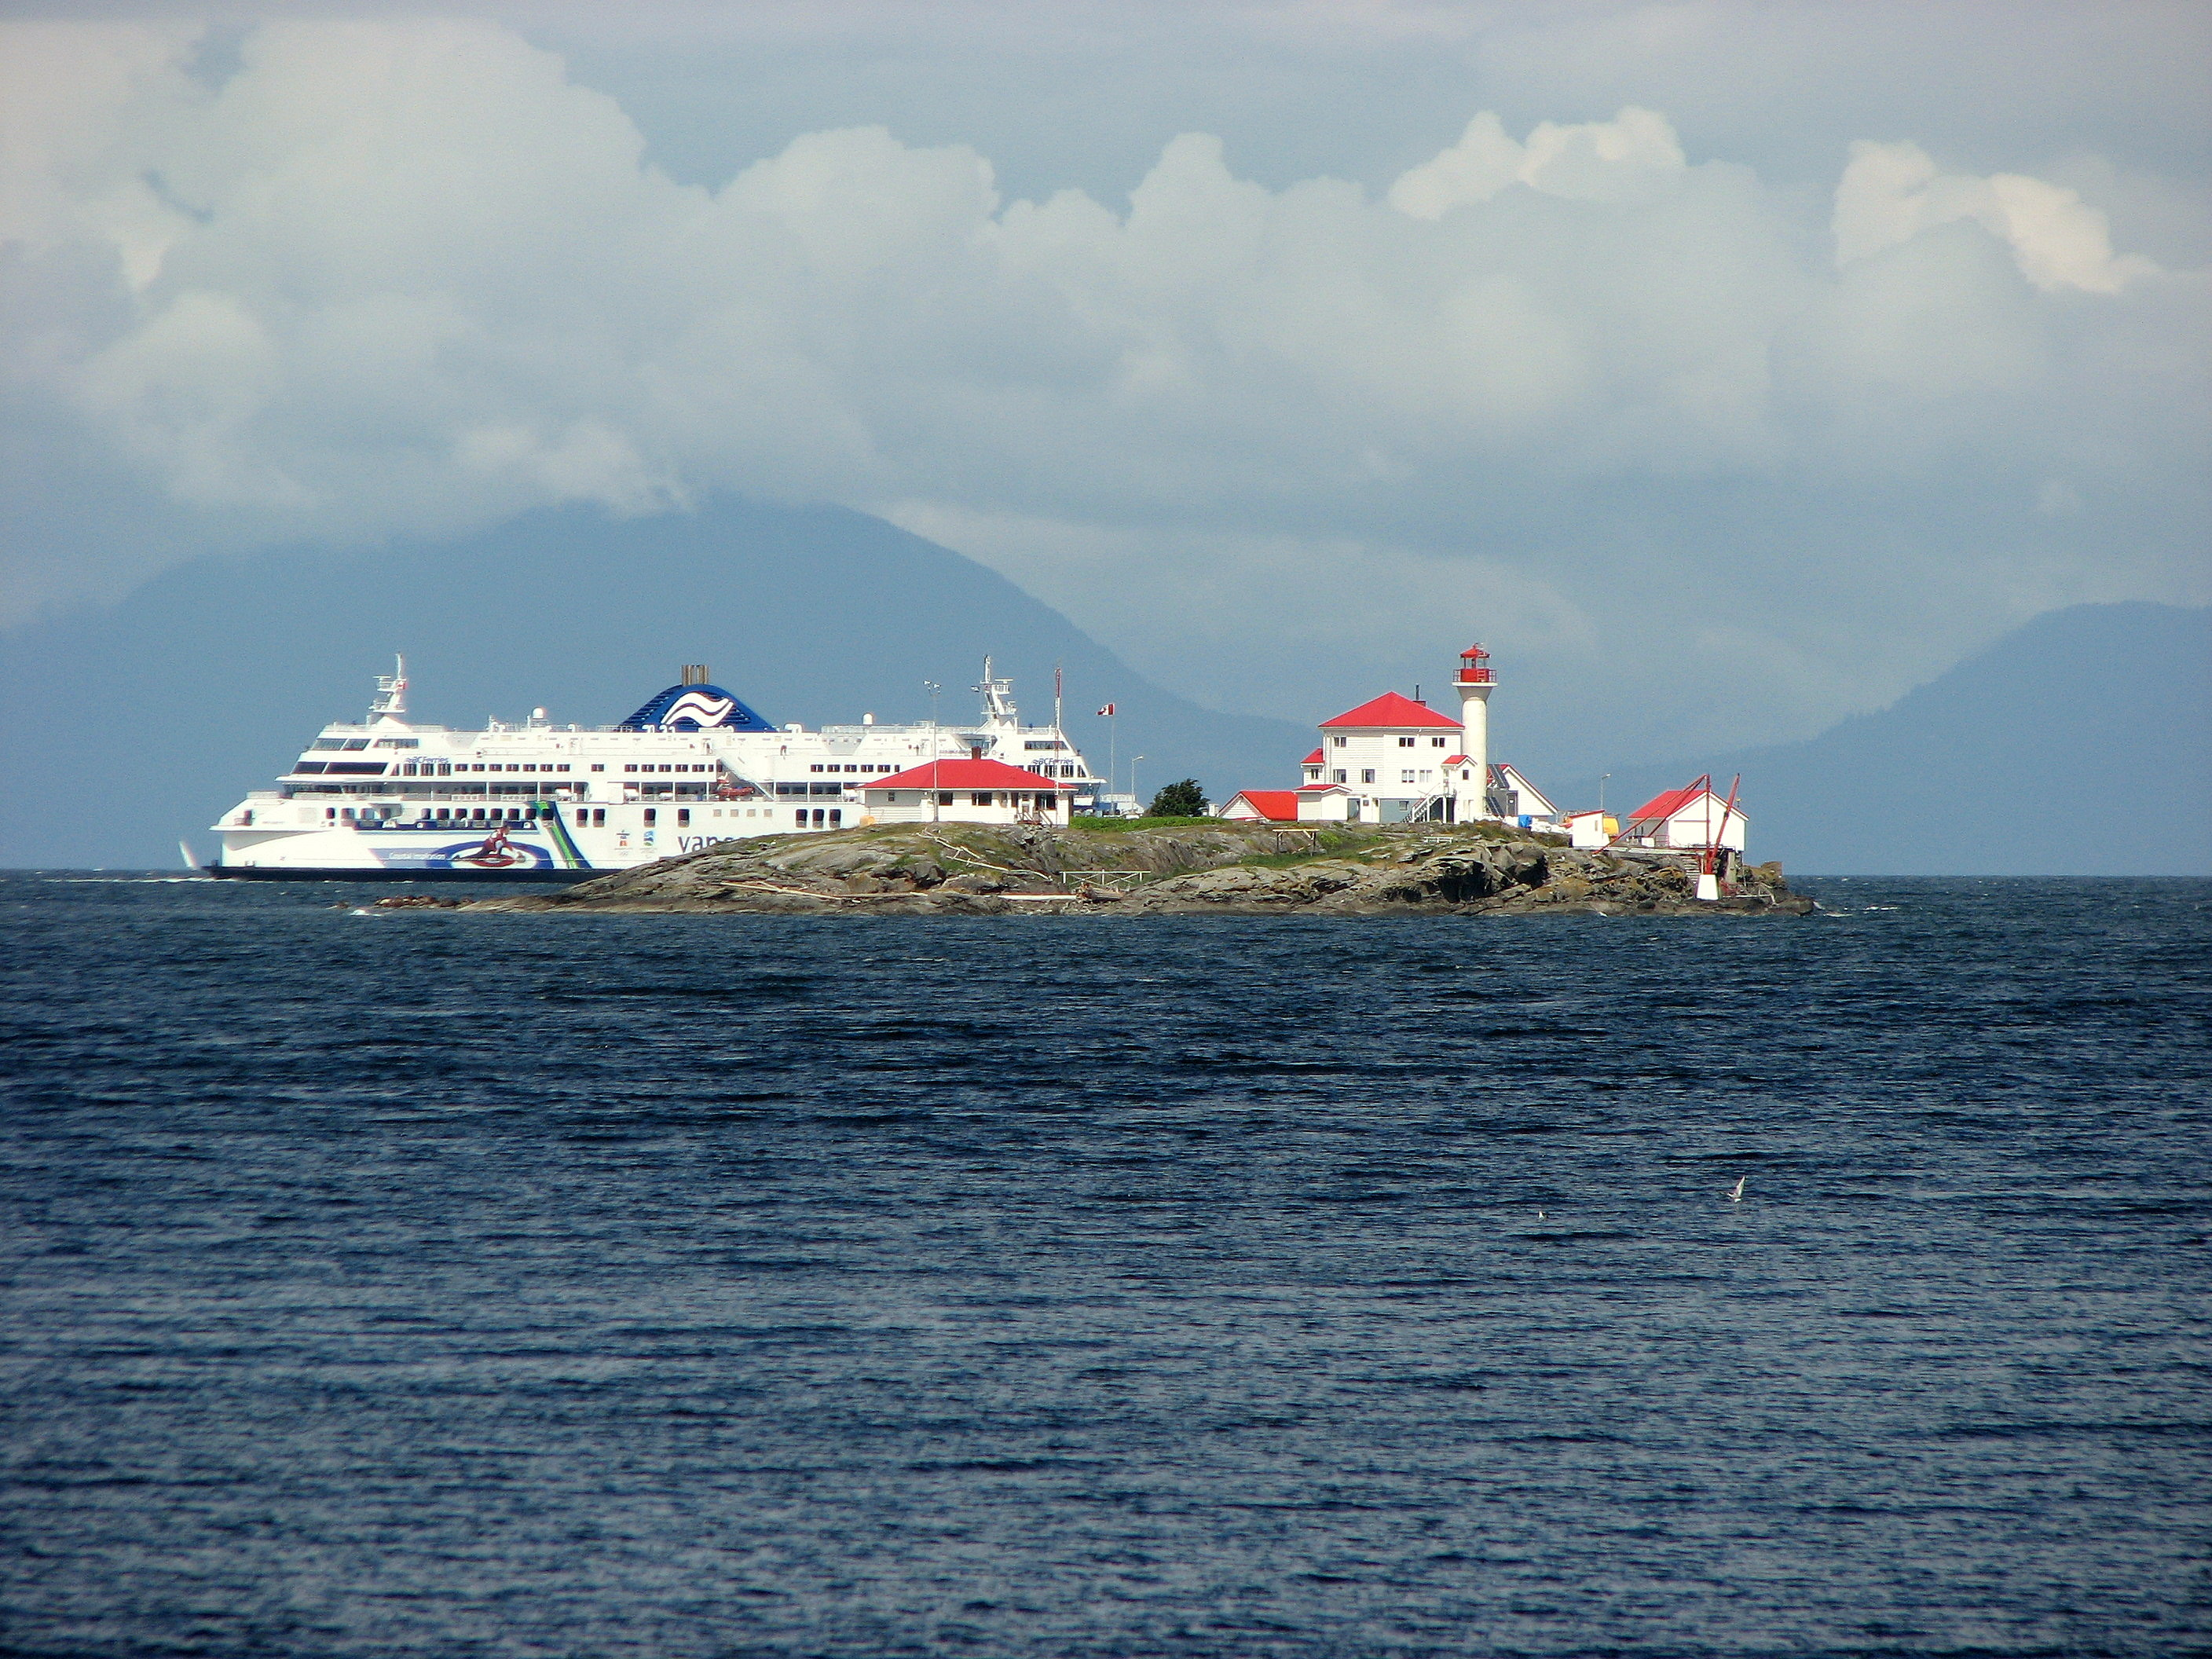 BC-Ferries-and-Entrance-Island.jpg